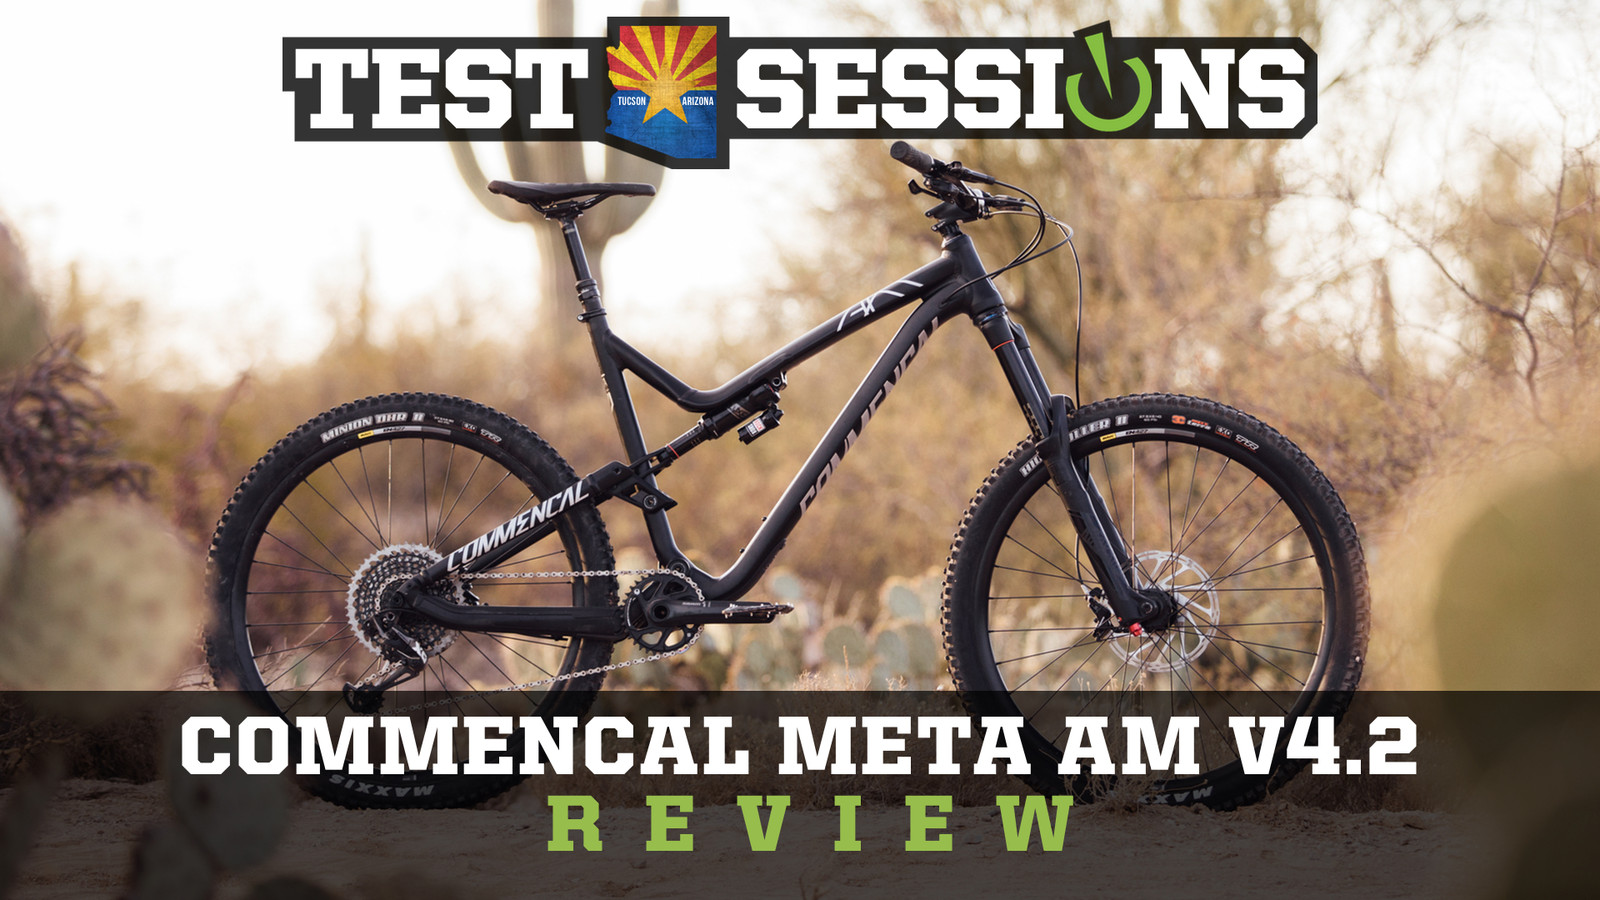 Review - 2017 Commencal Meta AM V4.2 from Vital MTB Test Sessions